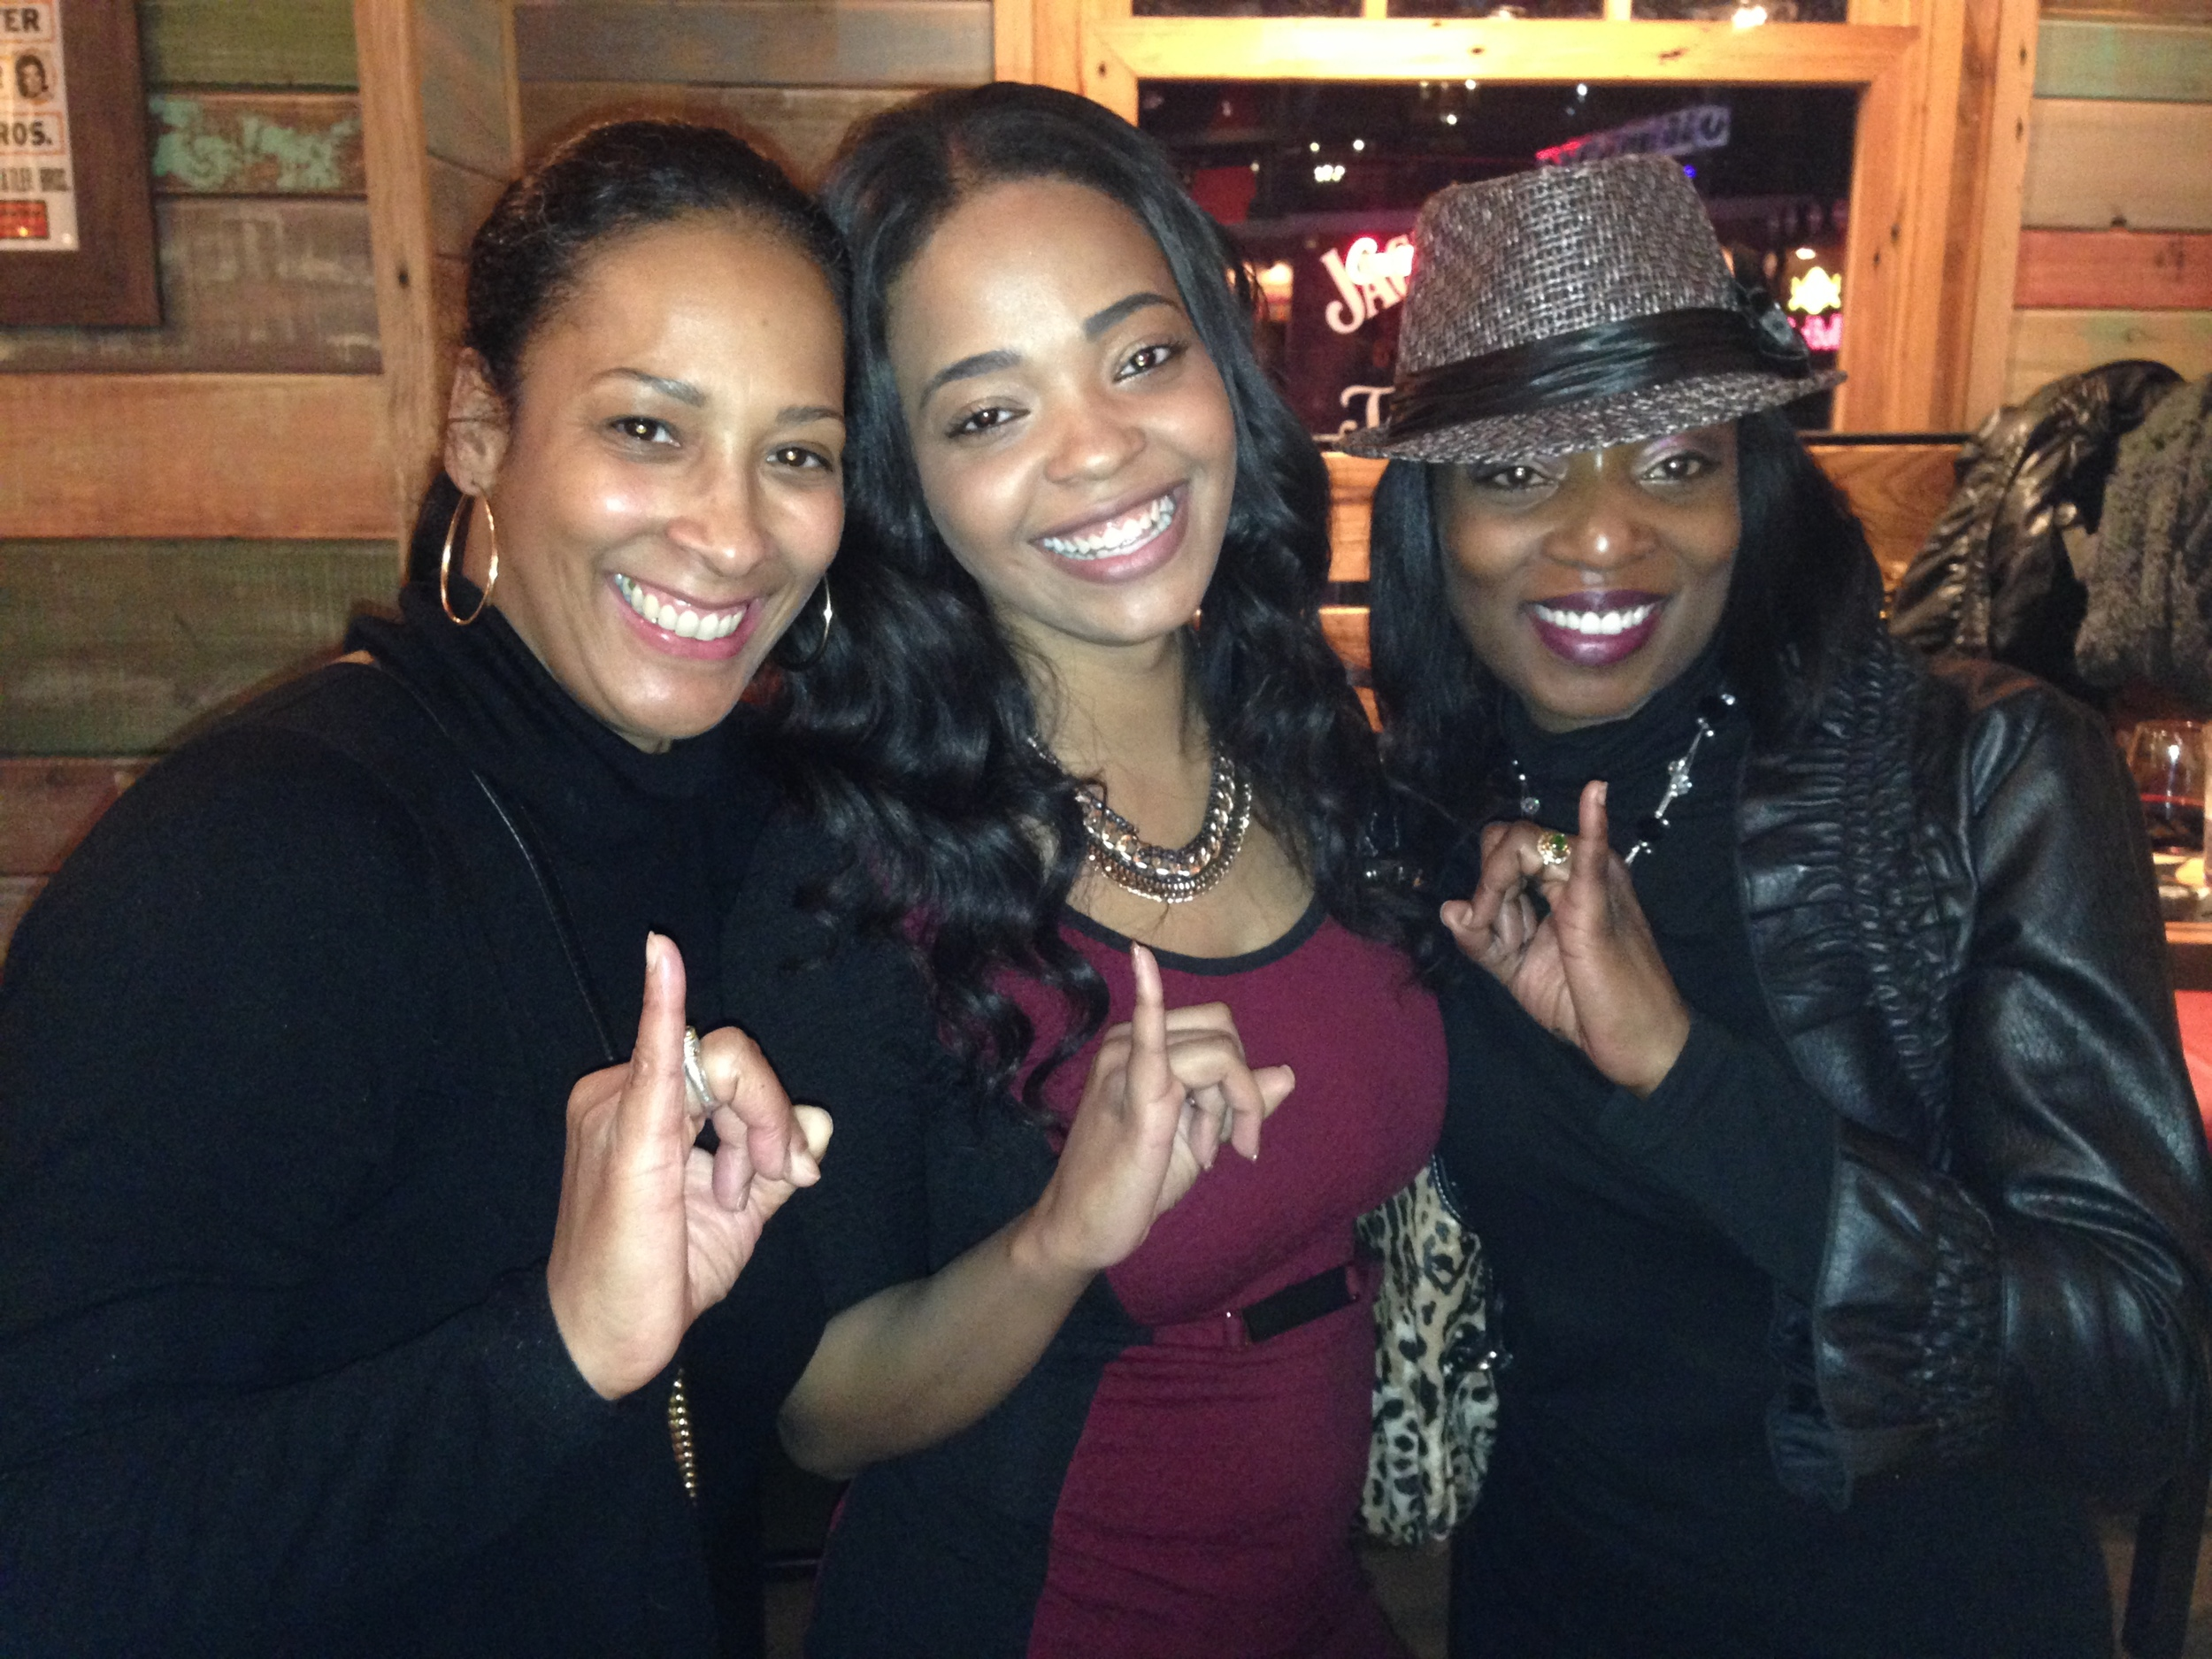 Felice with her sorors, including previous S+E Veteran Lyah LeFlore